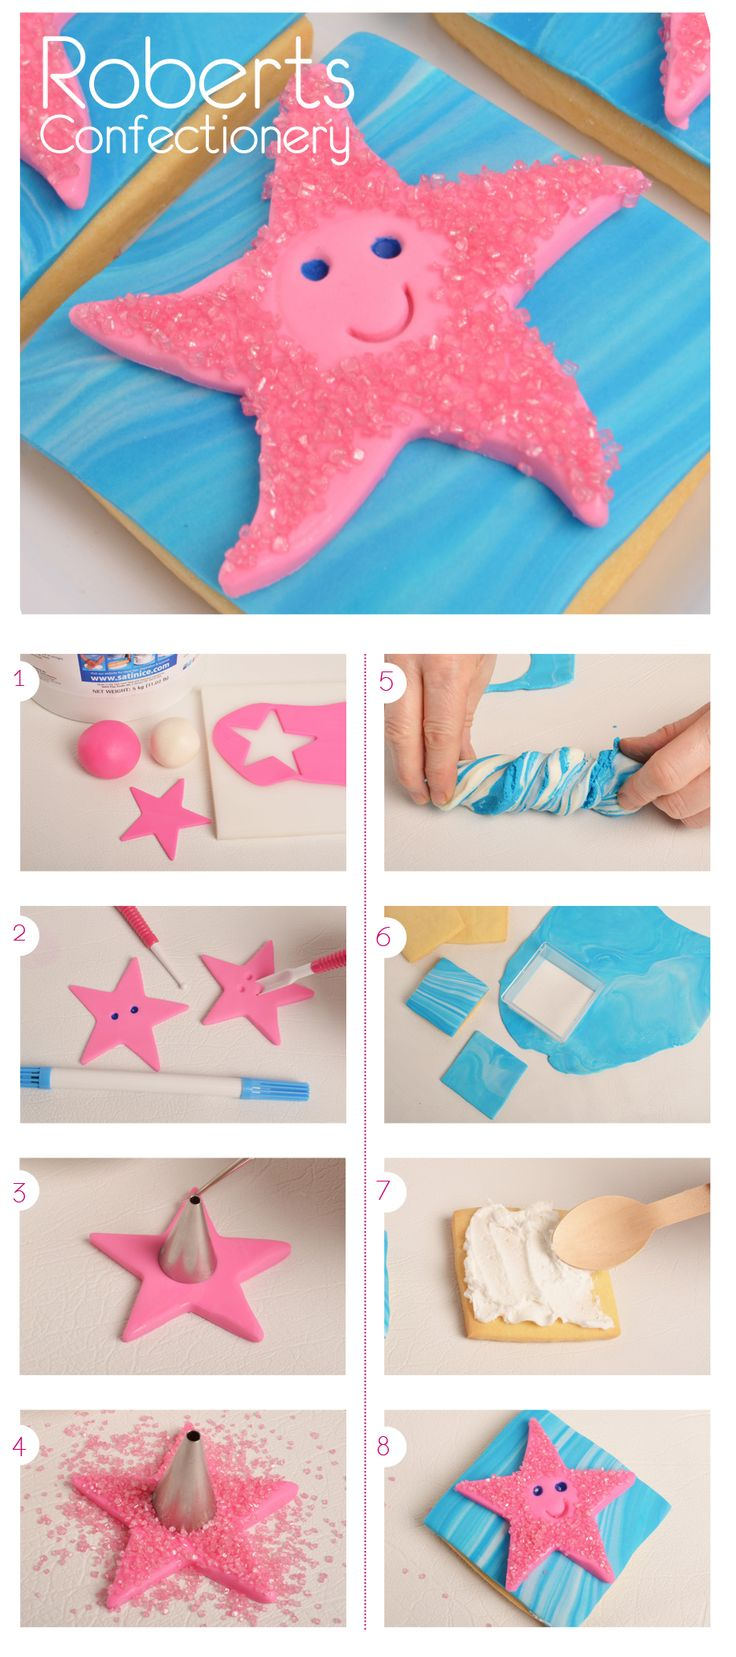 Inspired by Finding Nemo, these cute Starfish Cookies are easy to make & taste delicious! We've used Satin Ice Fondant & Roberts Confectionery Pink Sanding Sugar.